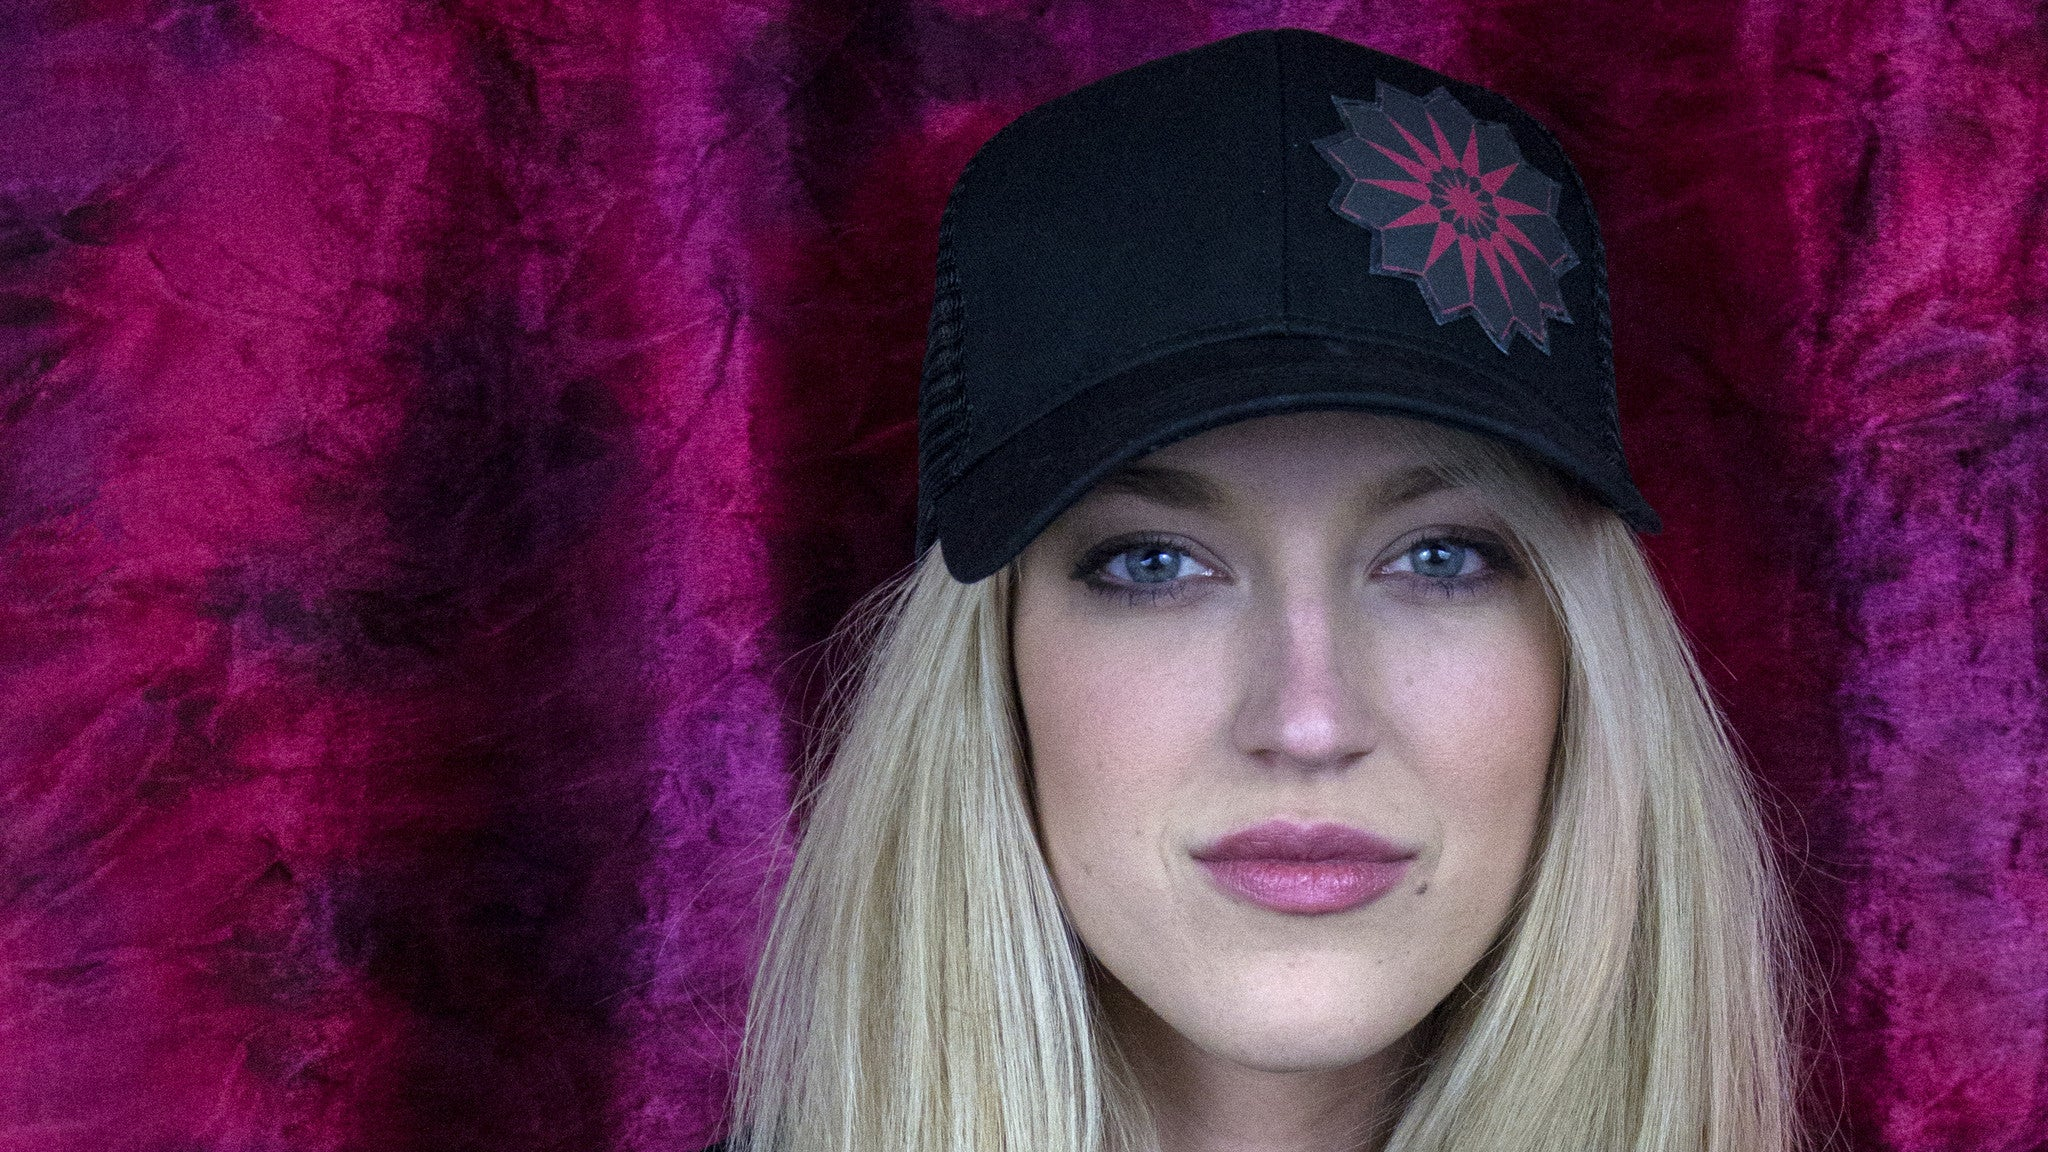 Causes: Root Chakra - Hats